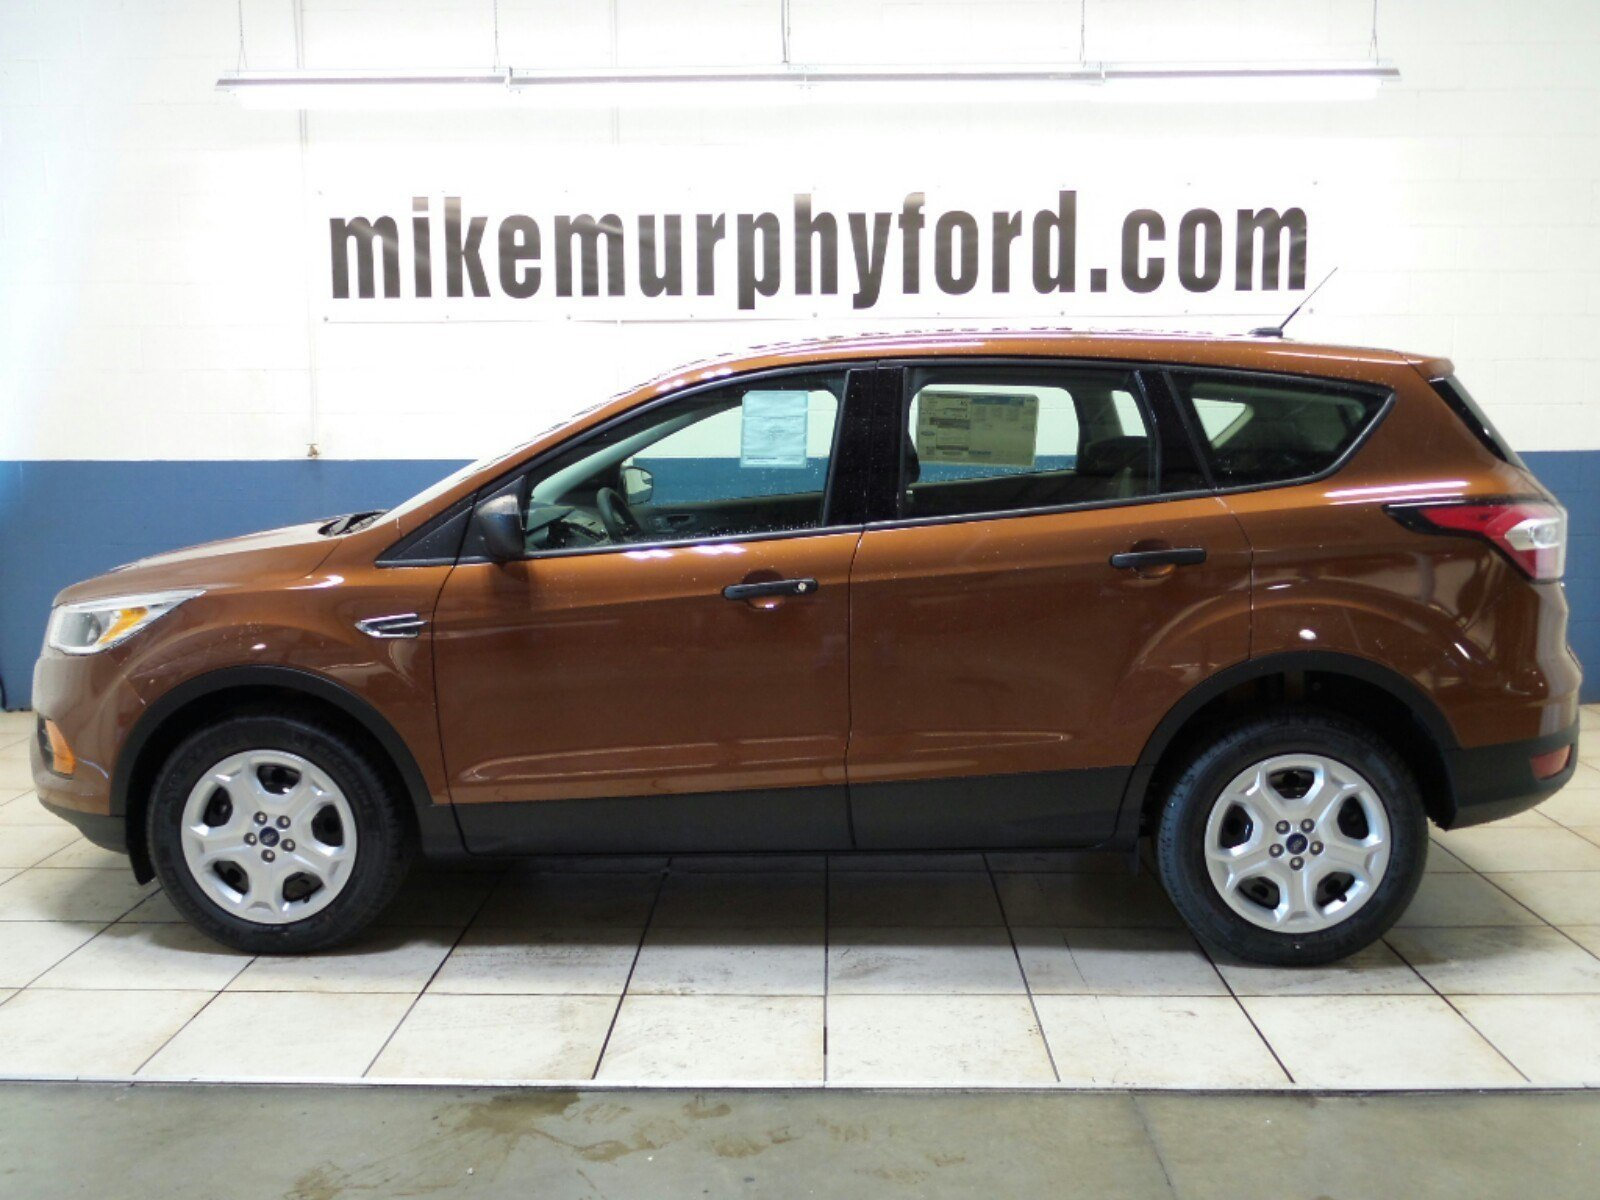 new 2017 ford escape s fwd sport utility in morton b50193 mike murphy ford. Black Bedroom Furniture Sets. Home Design Ideas